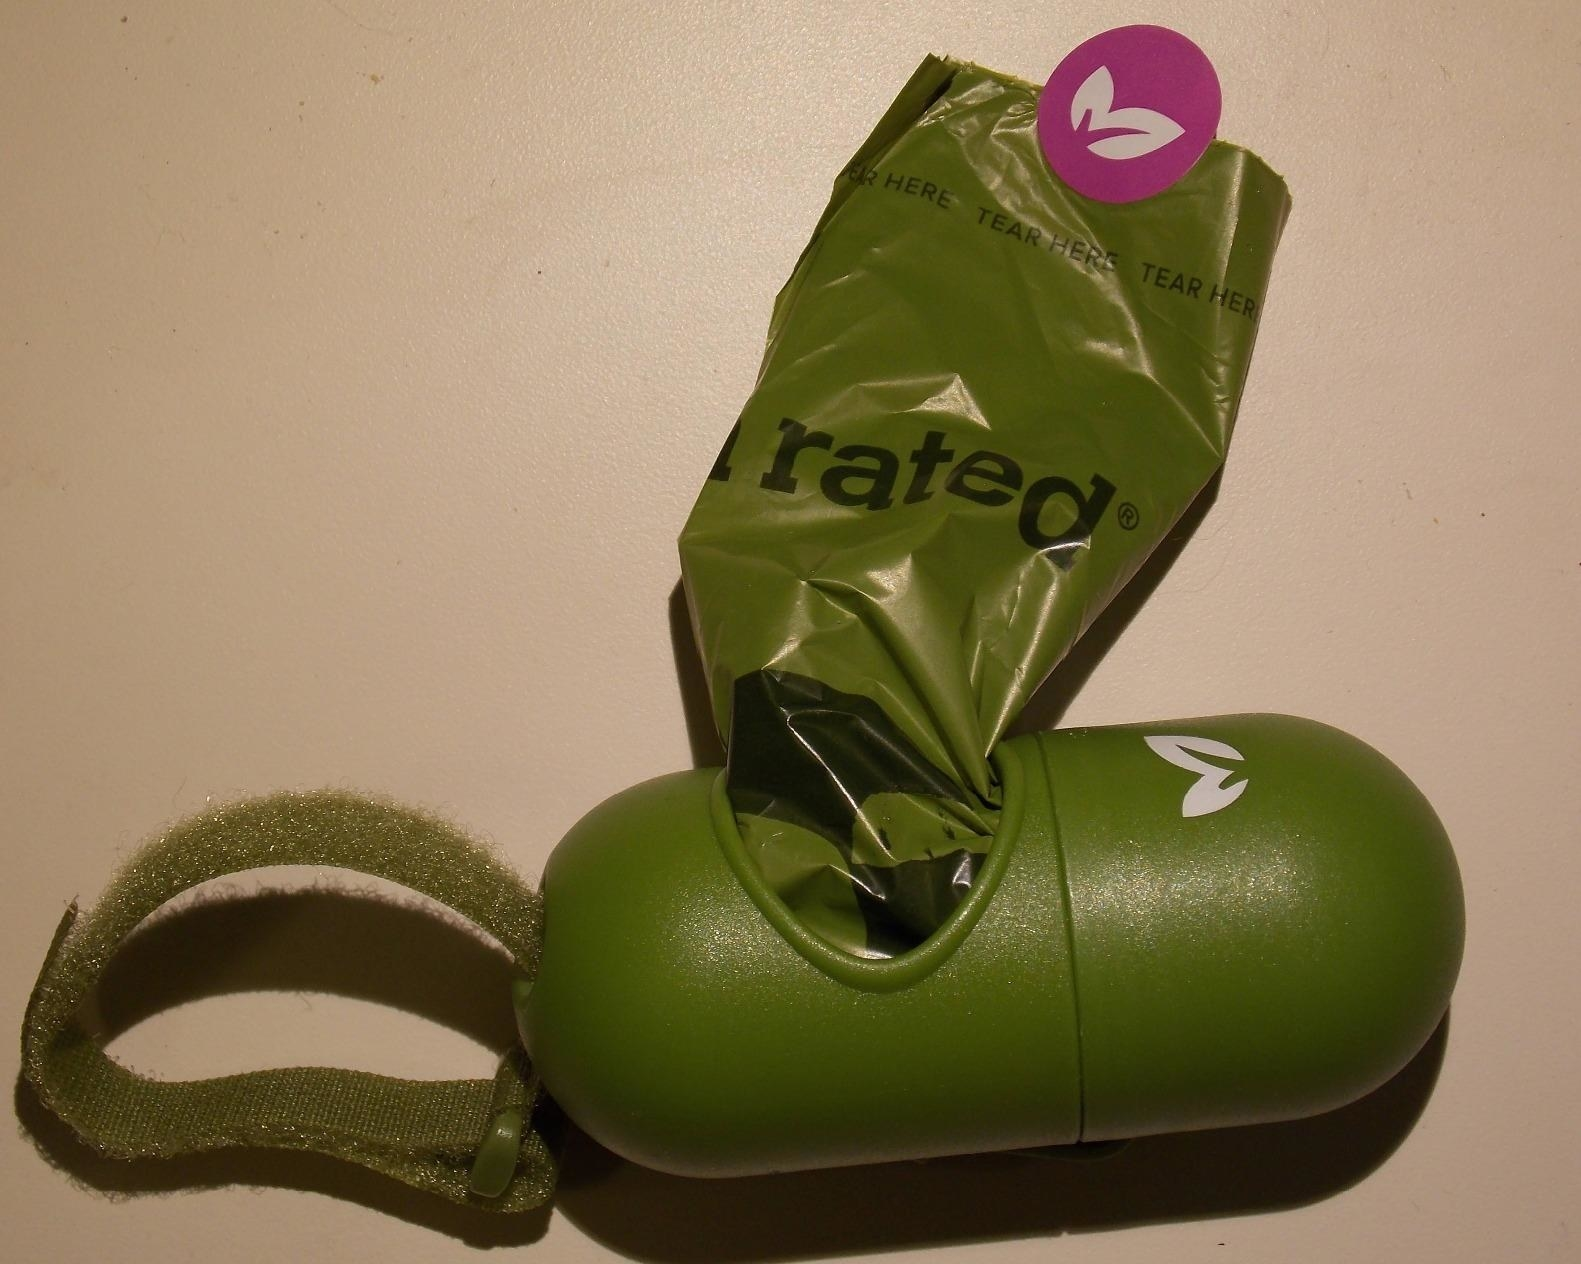 Reviewer's photo of the poop bag dispenser